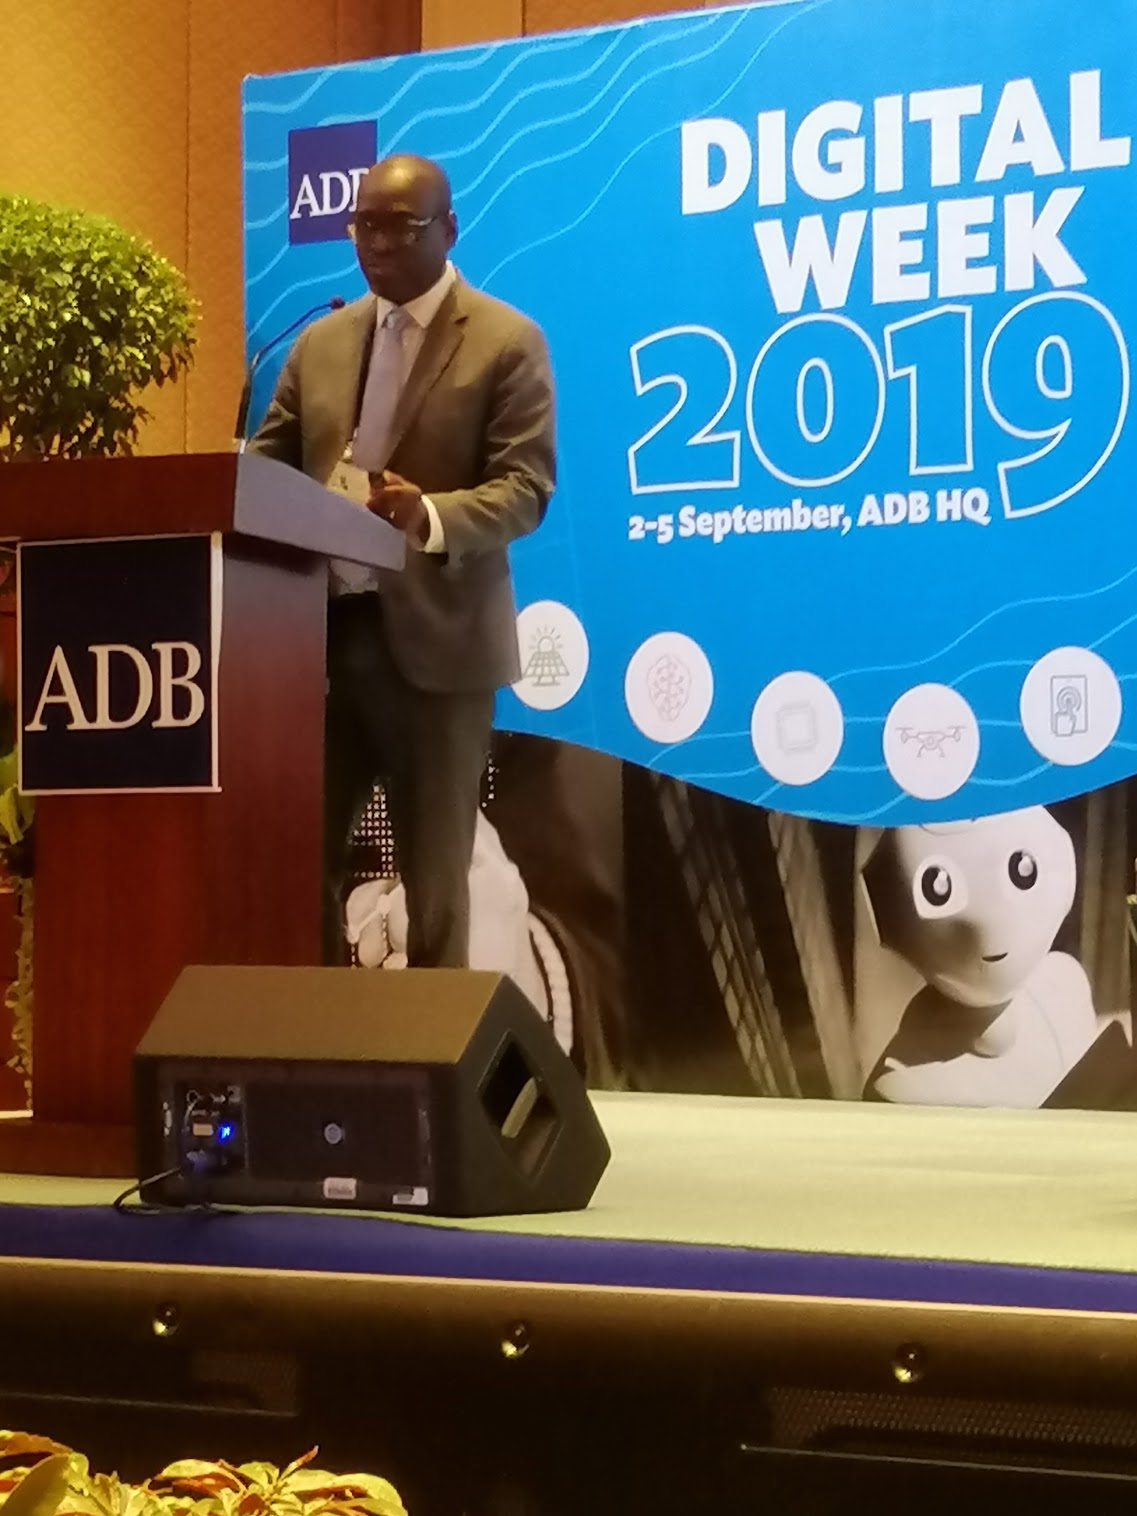 """10:33 a.m. - """"The most difficult part was getting the whole organization in-sync.""""Peppin Cyriaque Vougo, Director of IT at the African Development Bank talks about Corporate and Administrative Systems Transformation Journey."""